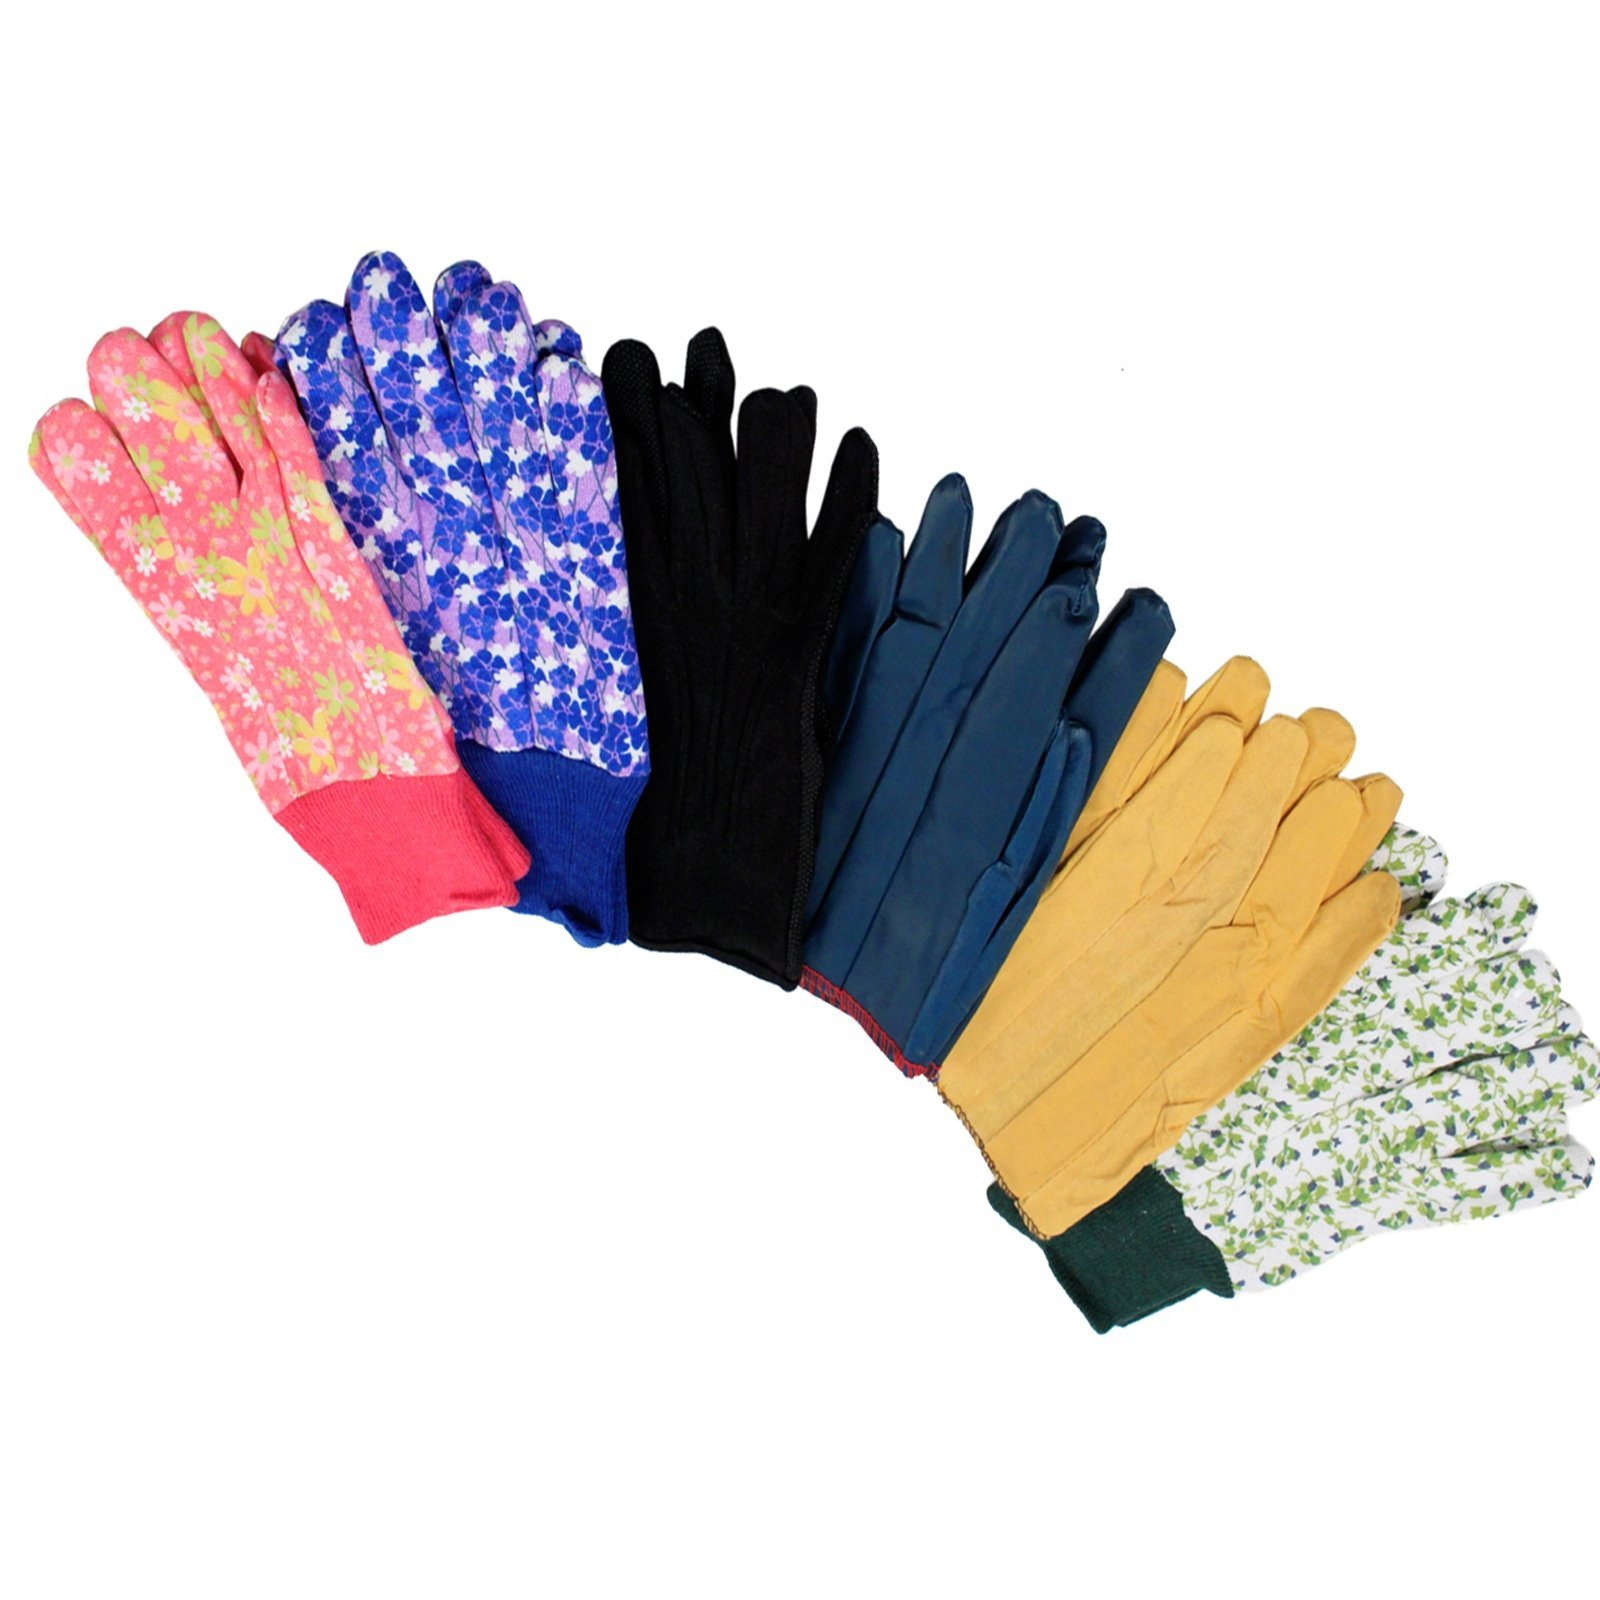 Gardening Gloves Universal Fit Durable Multi-Design Assorted Colors (1 Pair)